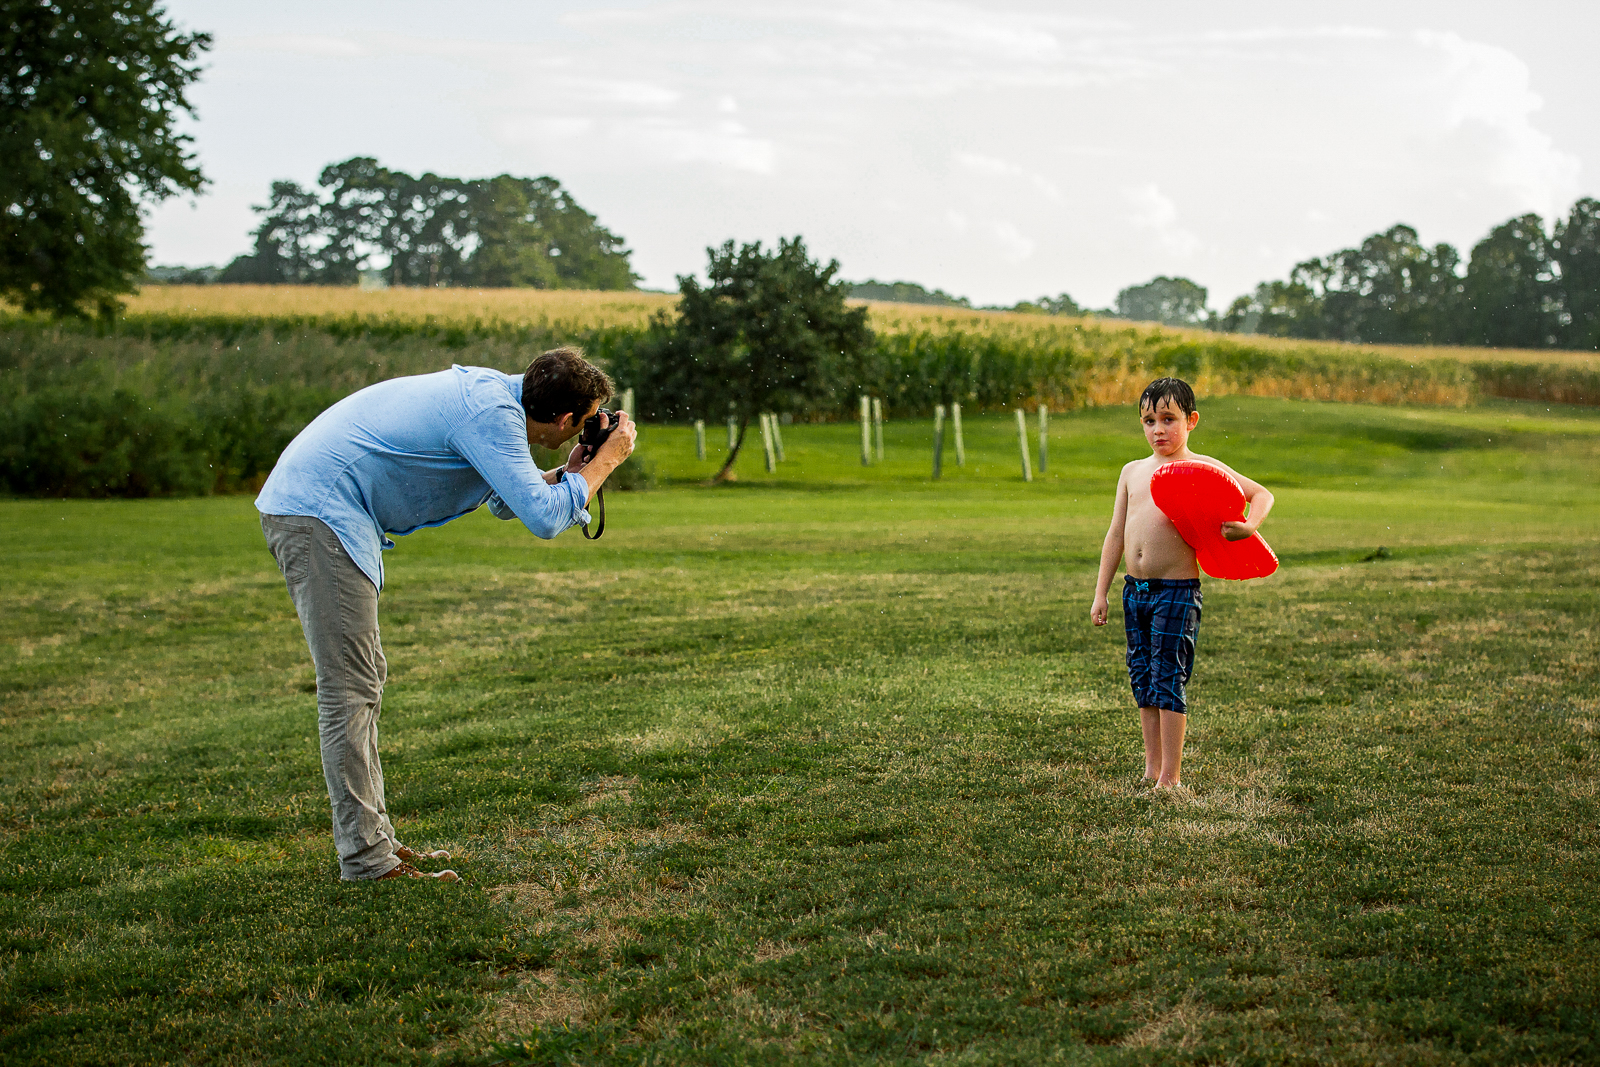 Be a Better Photographer: 5 Ways to Teach Photography| The Clickin' Moms Blog | November 14, 2016